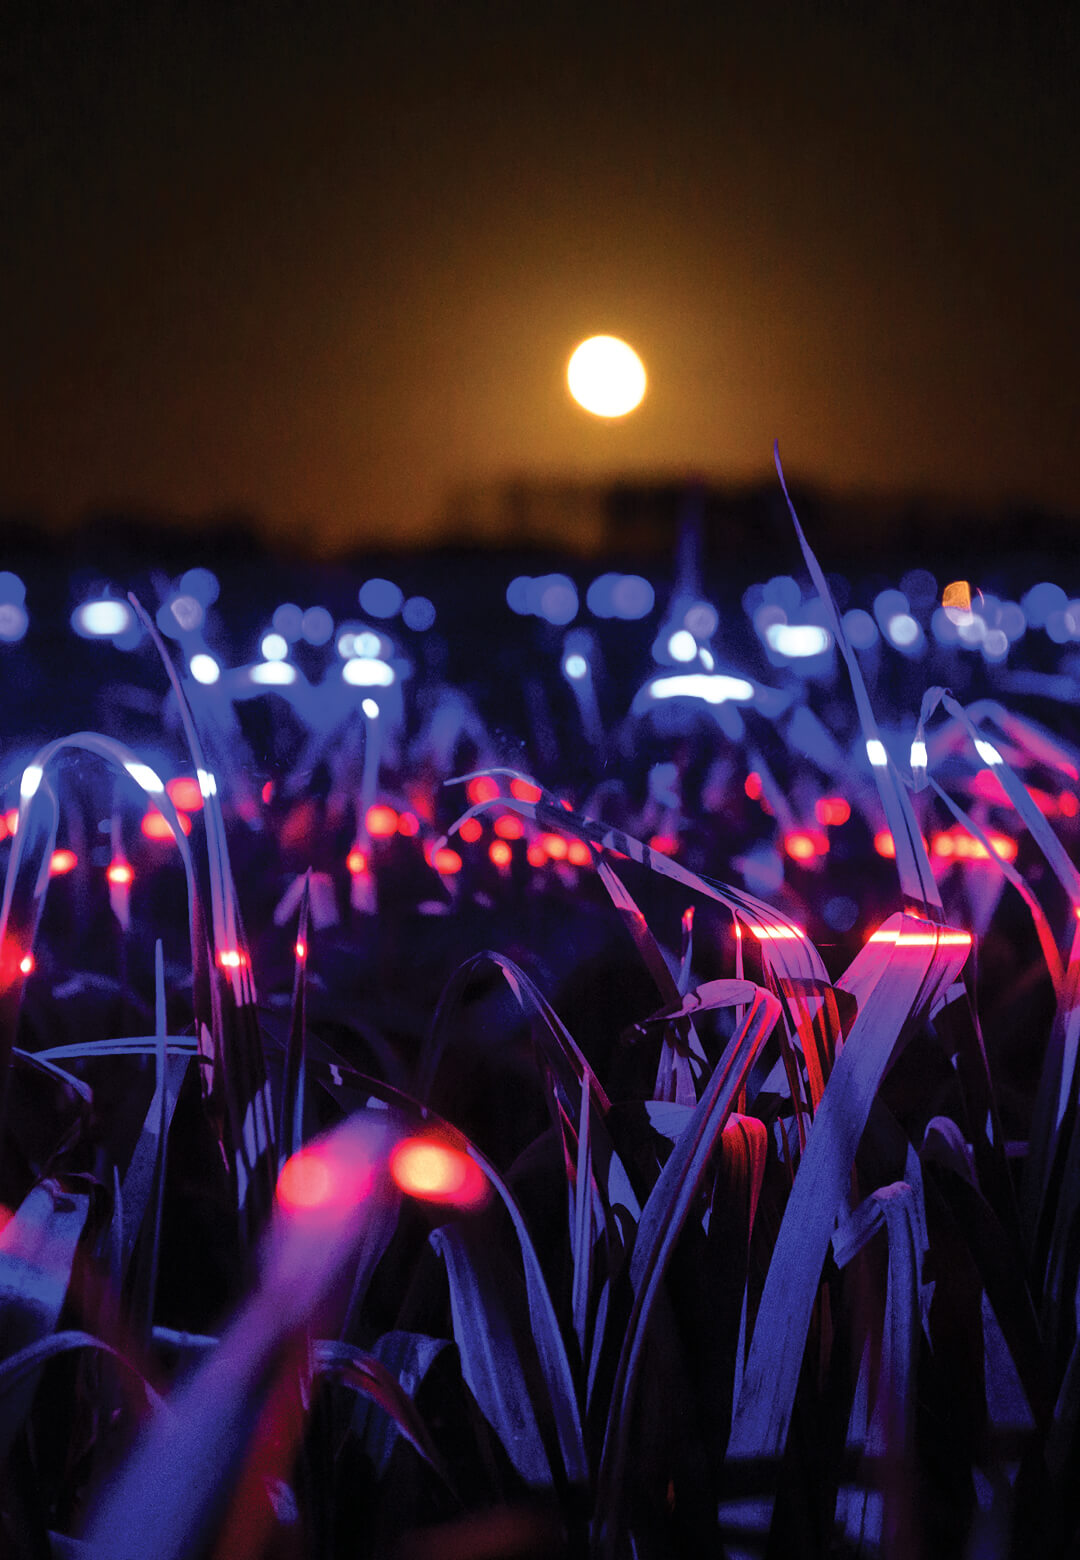 Grow is a 20,000 sqm light installation by Studio Roosegaarde that highlights the beauty and importance of agriculture | Grow by Daan Roosegaarde | STIRworld